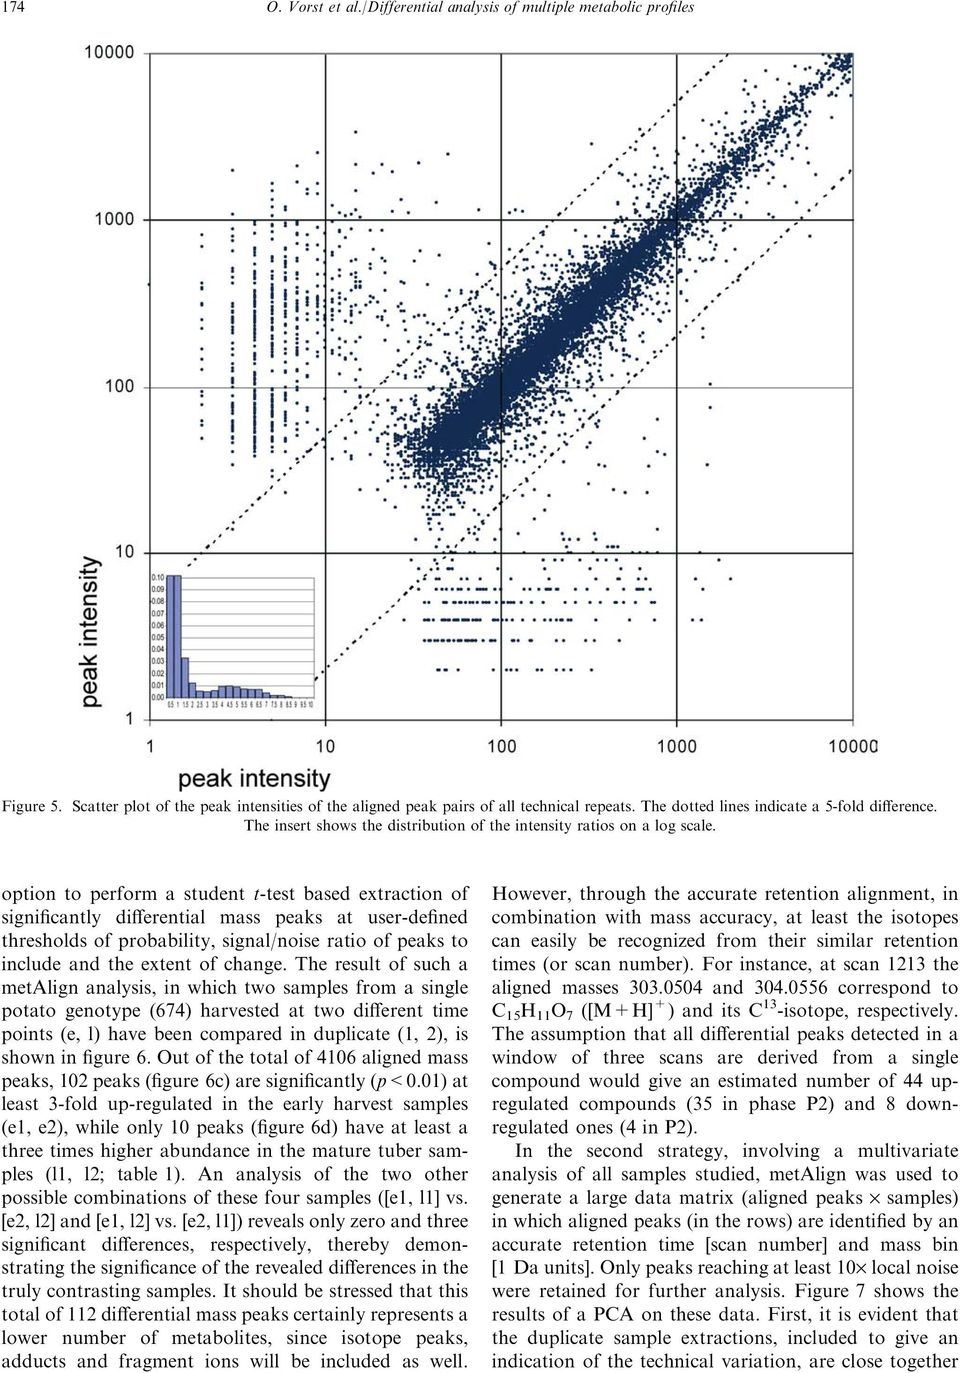 option to perform a student t-test based extraction of significantly differential mass peaks at user-defined thresholds of probability, signal/noise ratio of peaks to include and the extent of change.